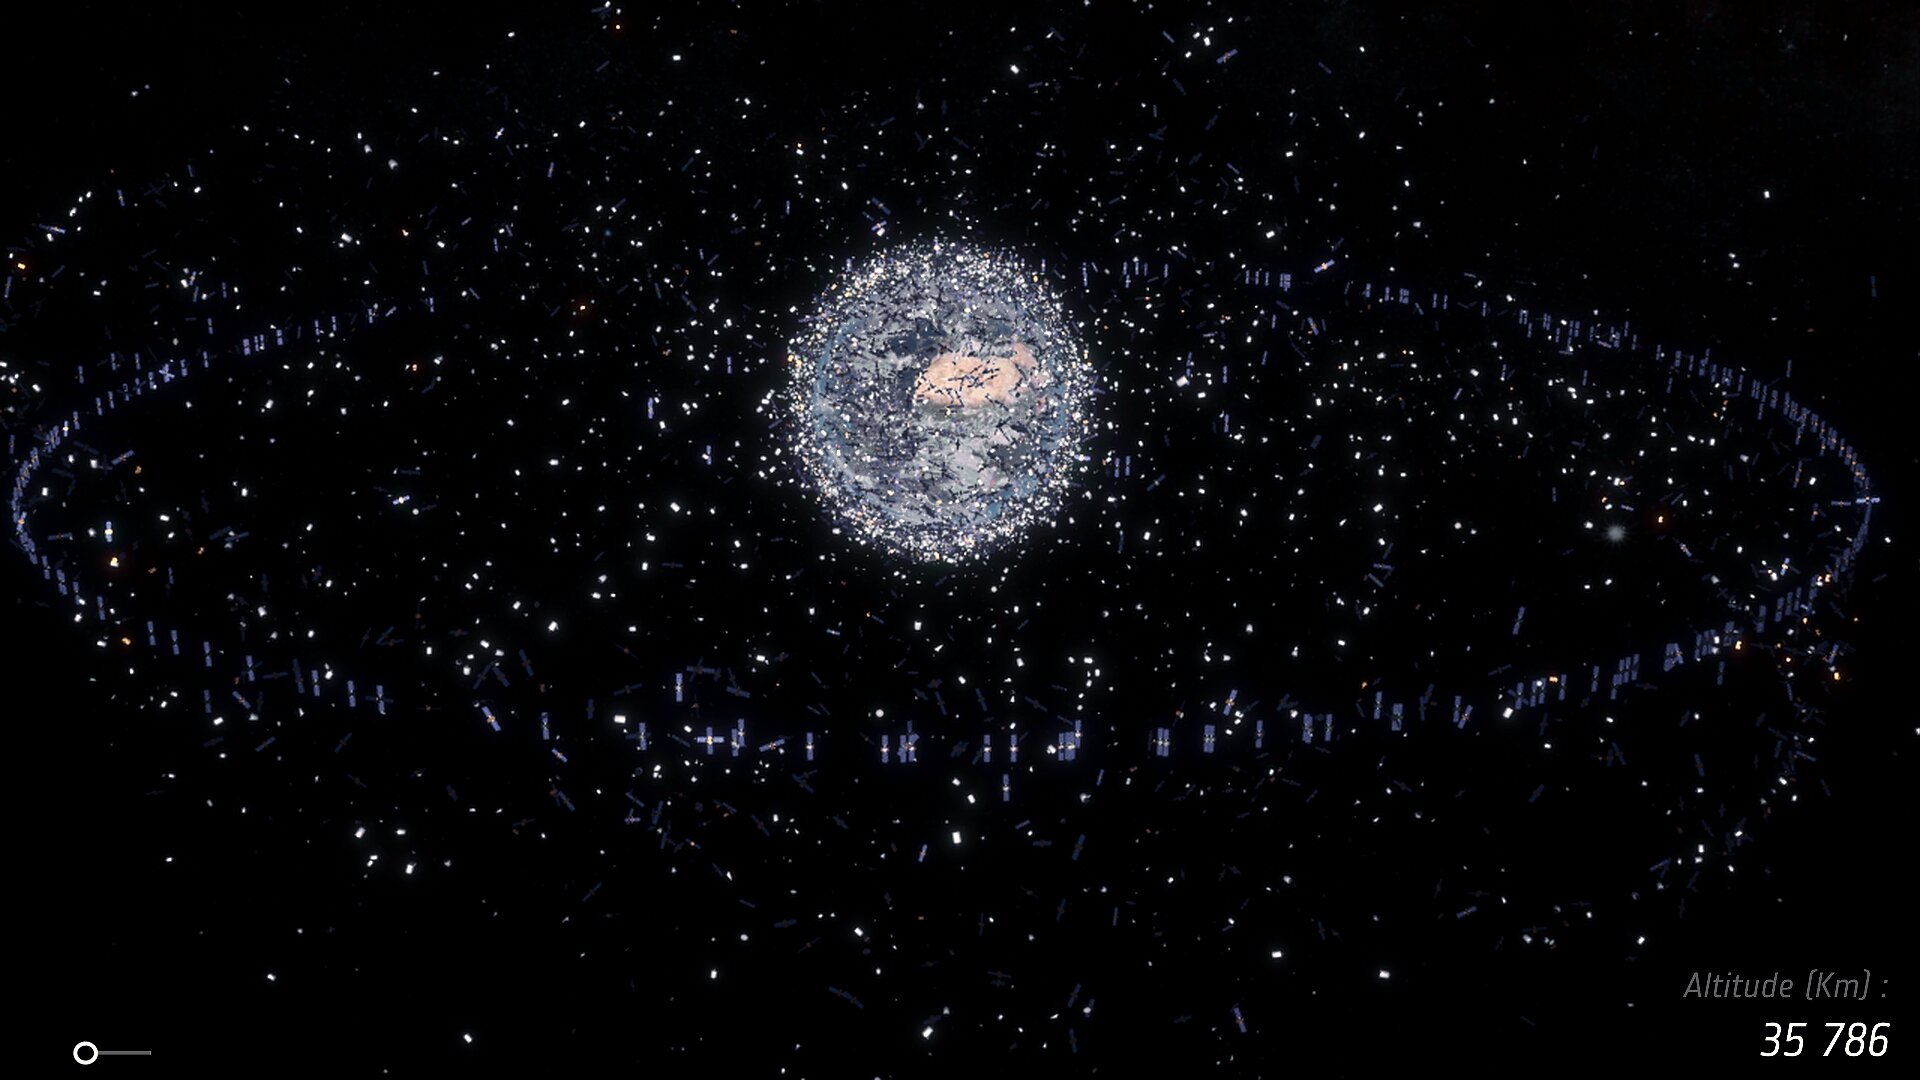 Space debris effects on the geostationary orbit